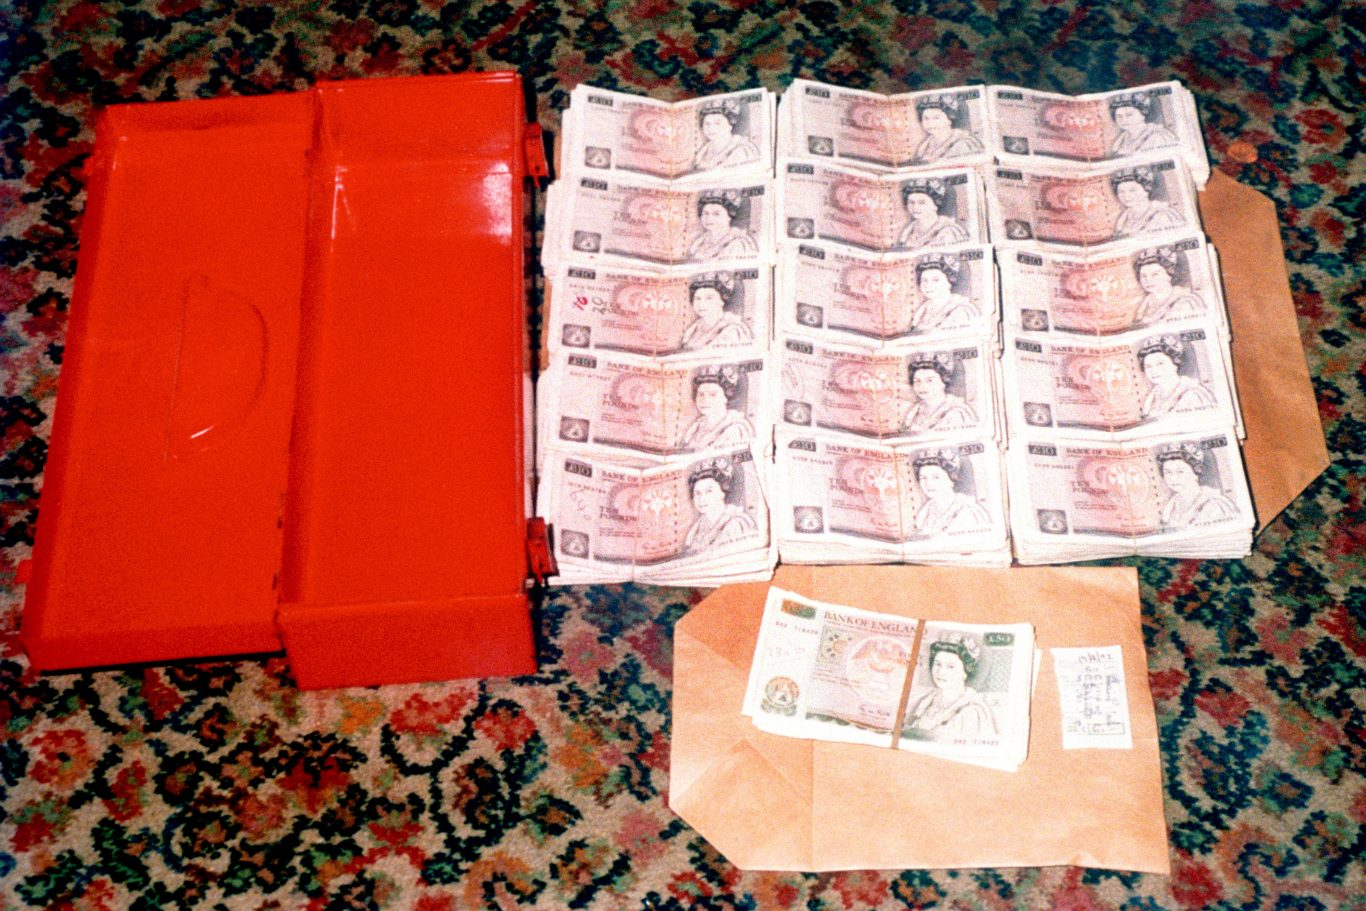 Some of the ransom money recovered by police investigating the kidnap of Stephanie Slater (PA)